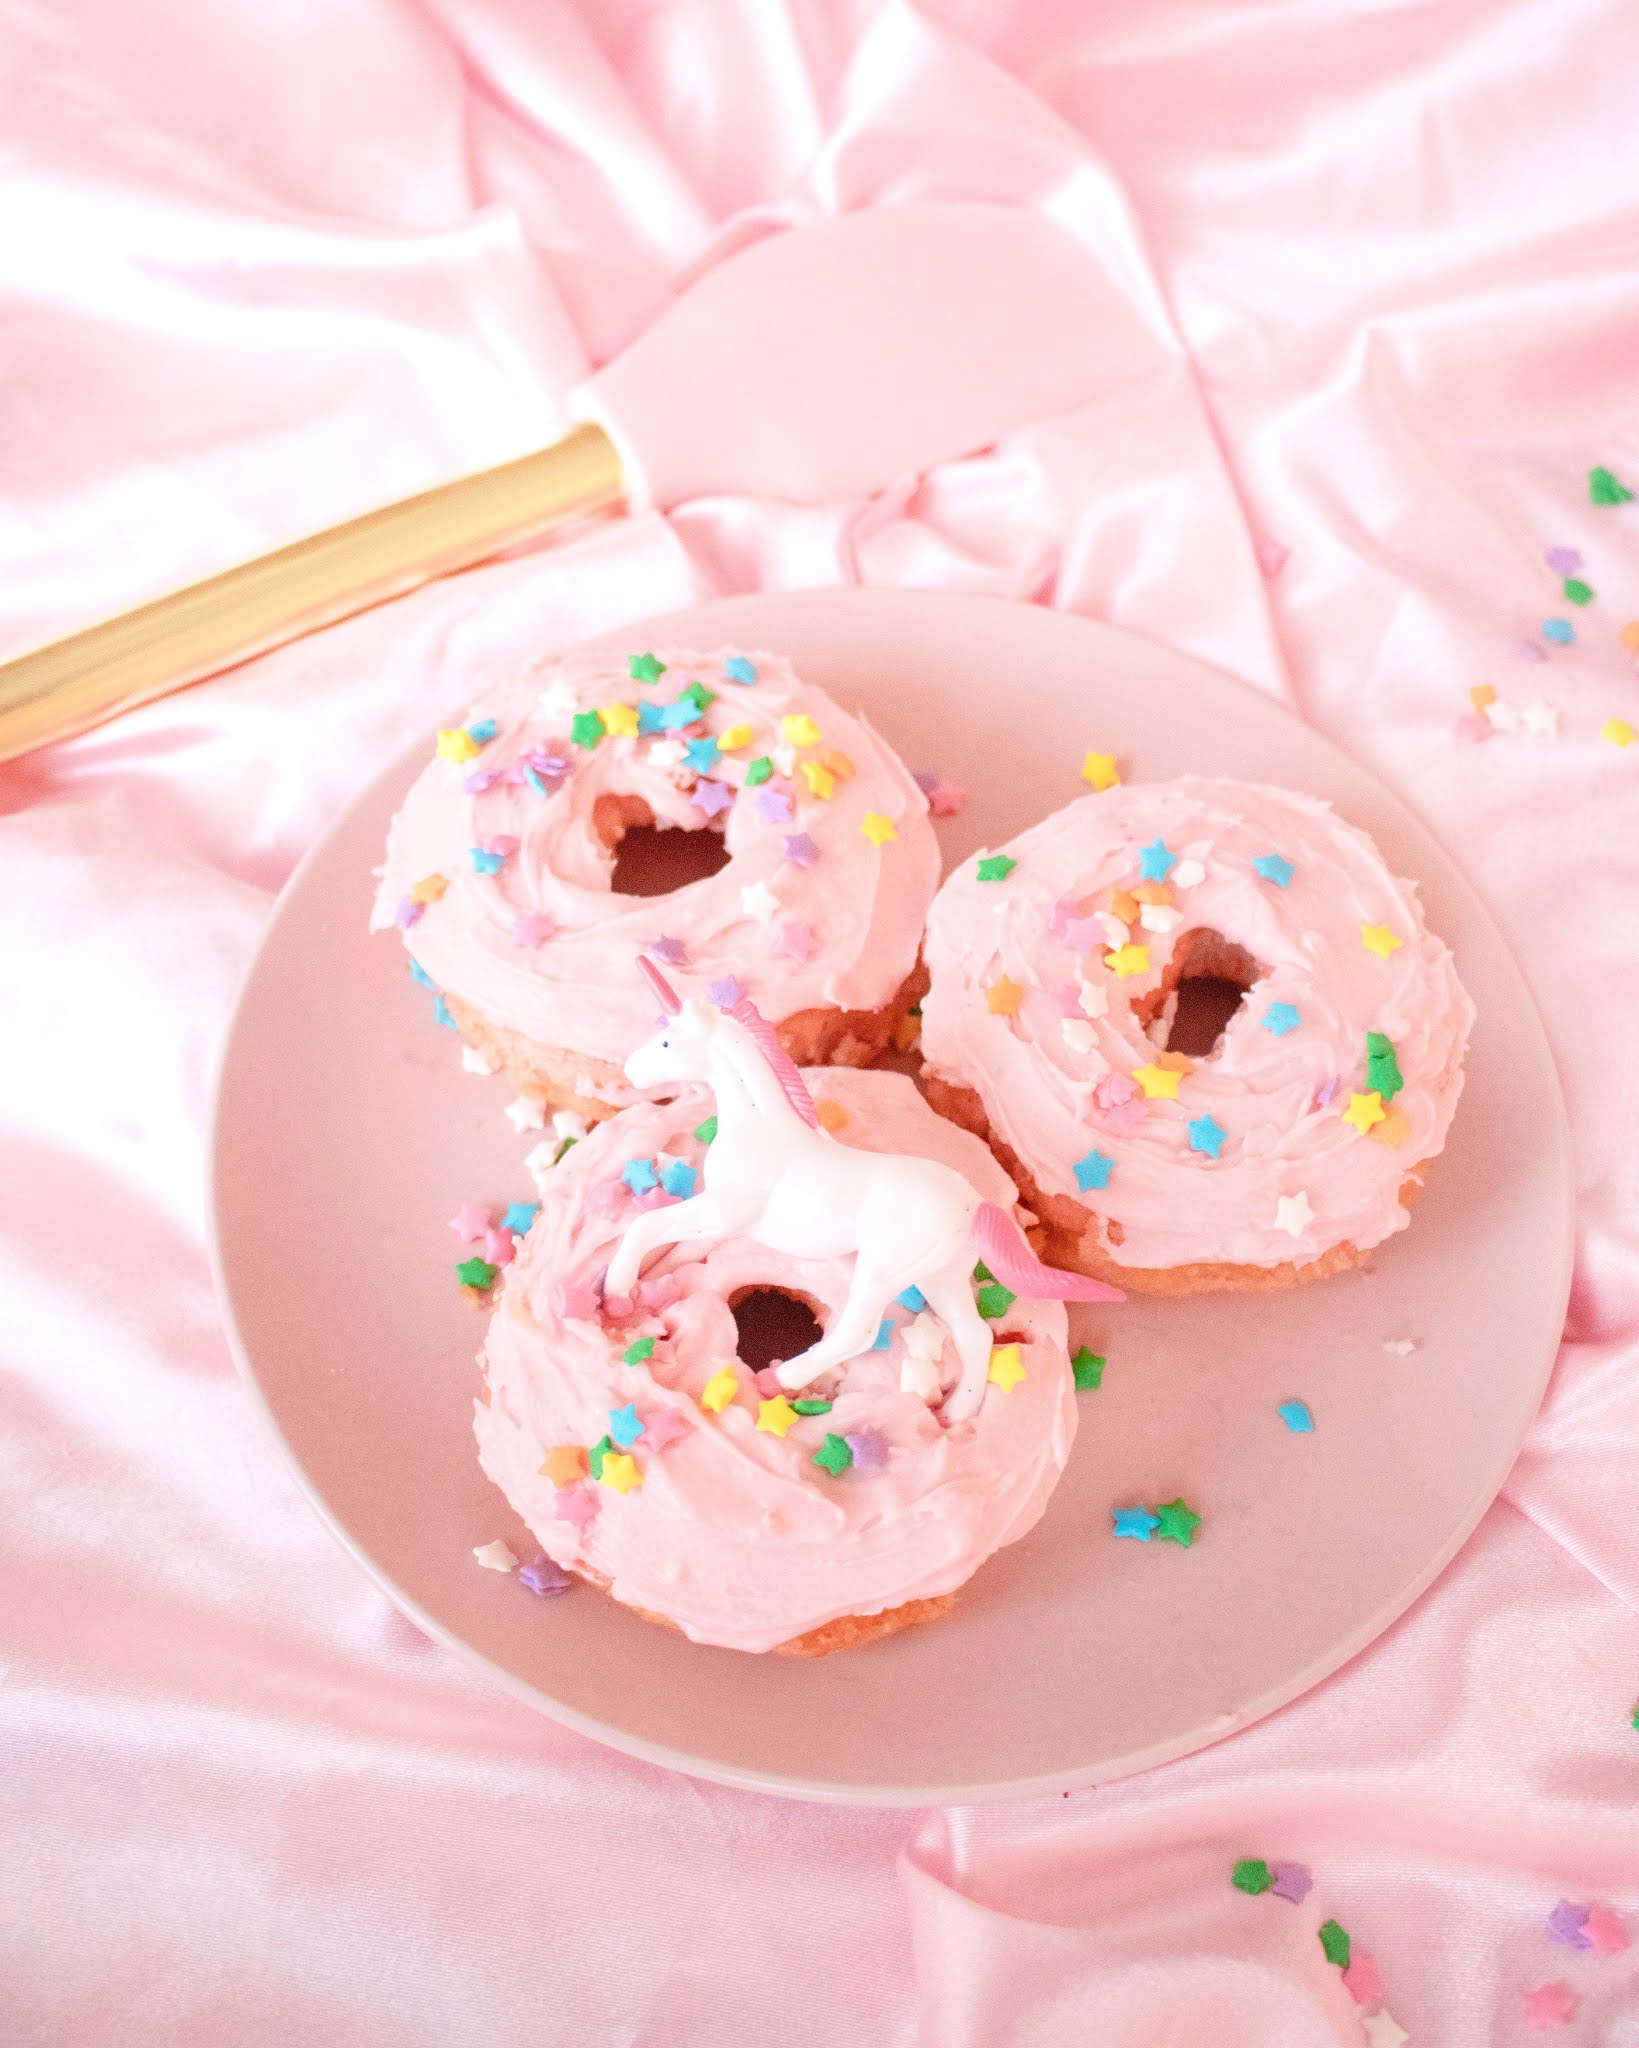 Doughnuts on a plate on a pink fabric background